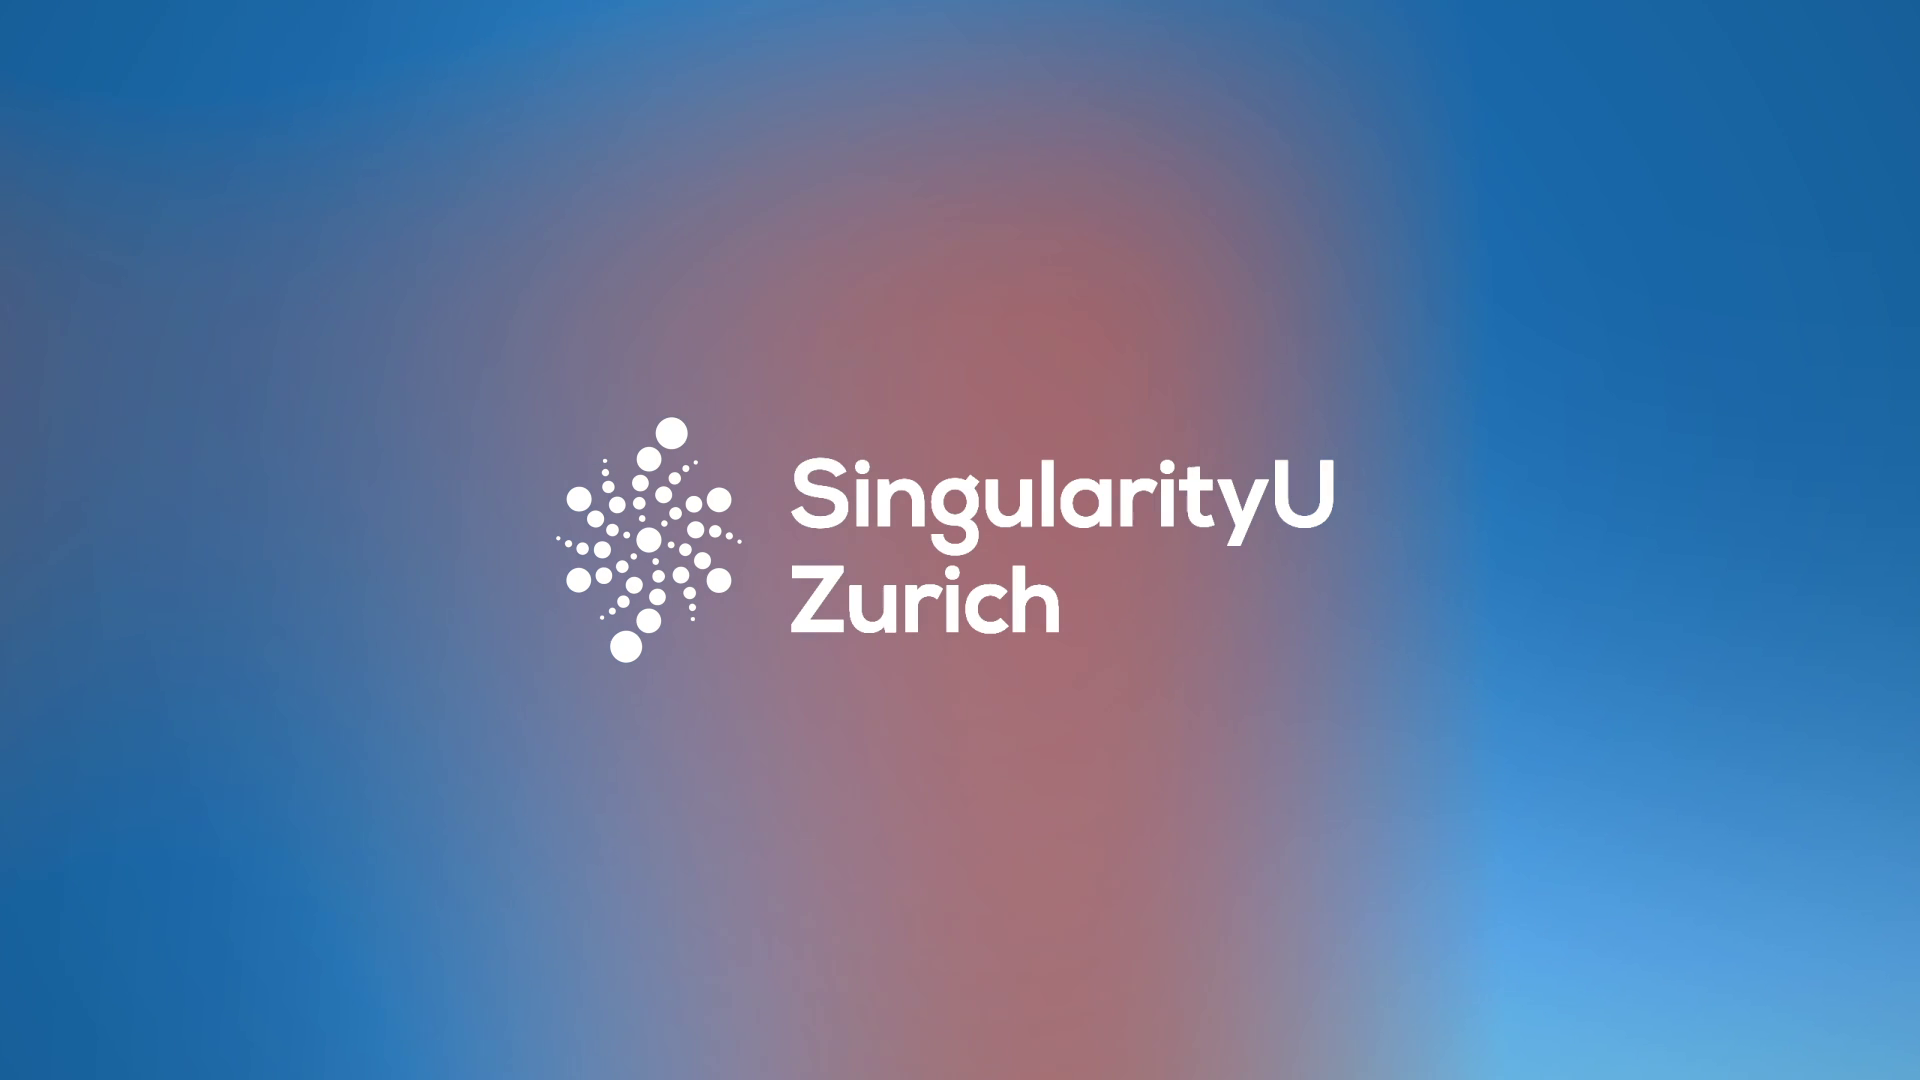 SingularityU - Chapter Zurich